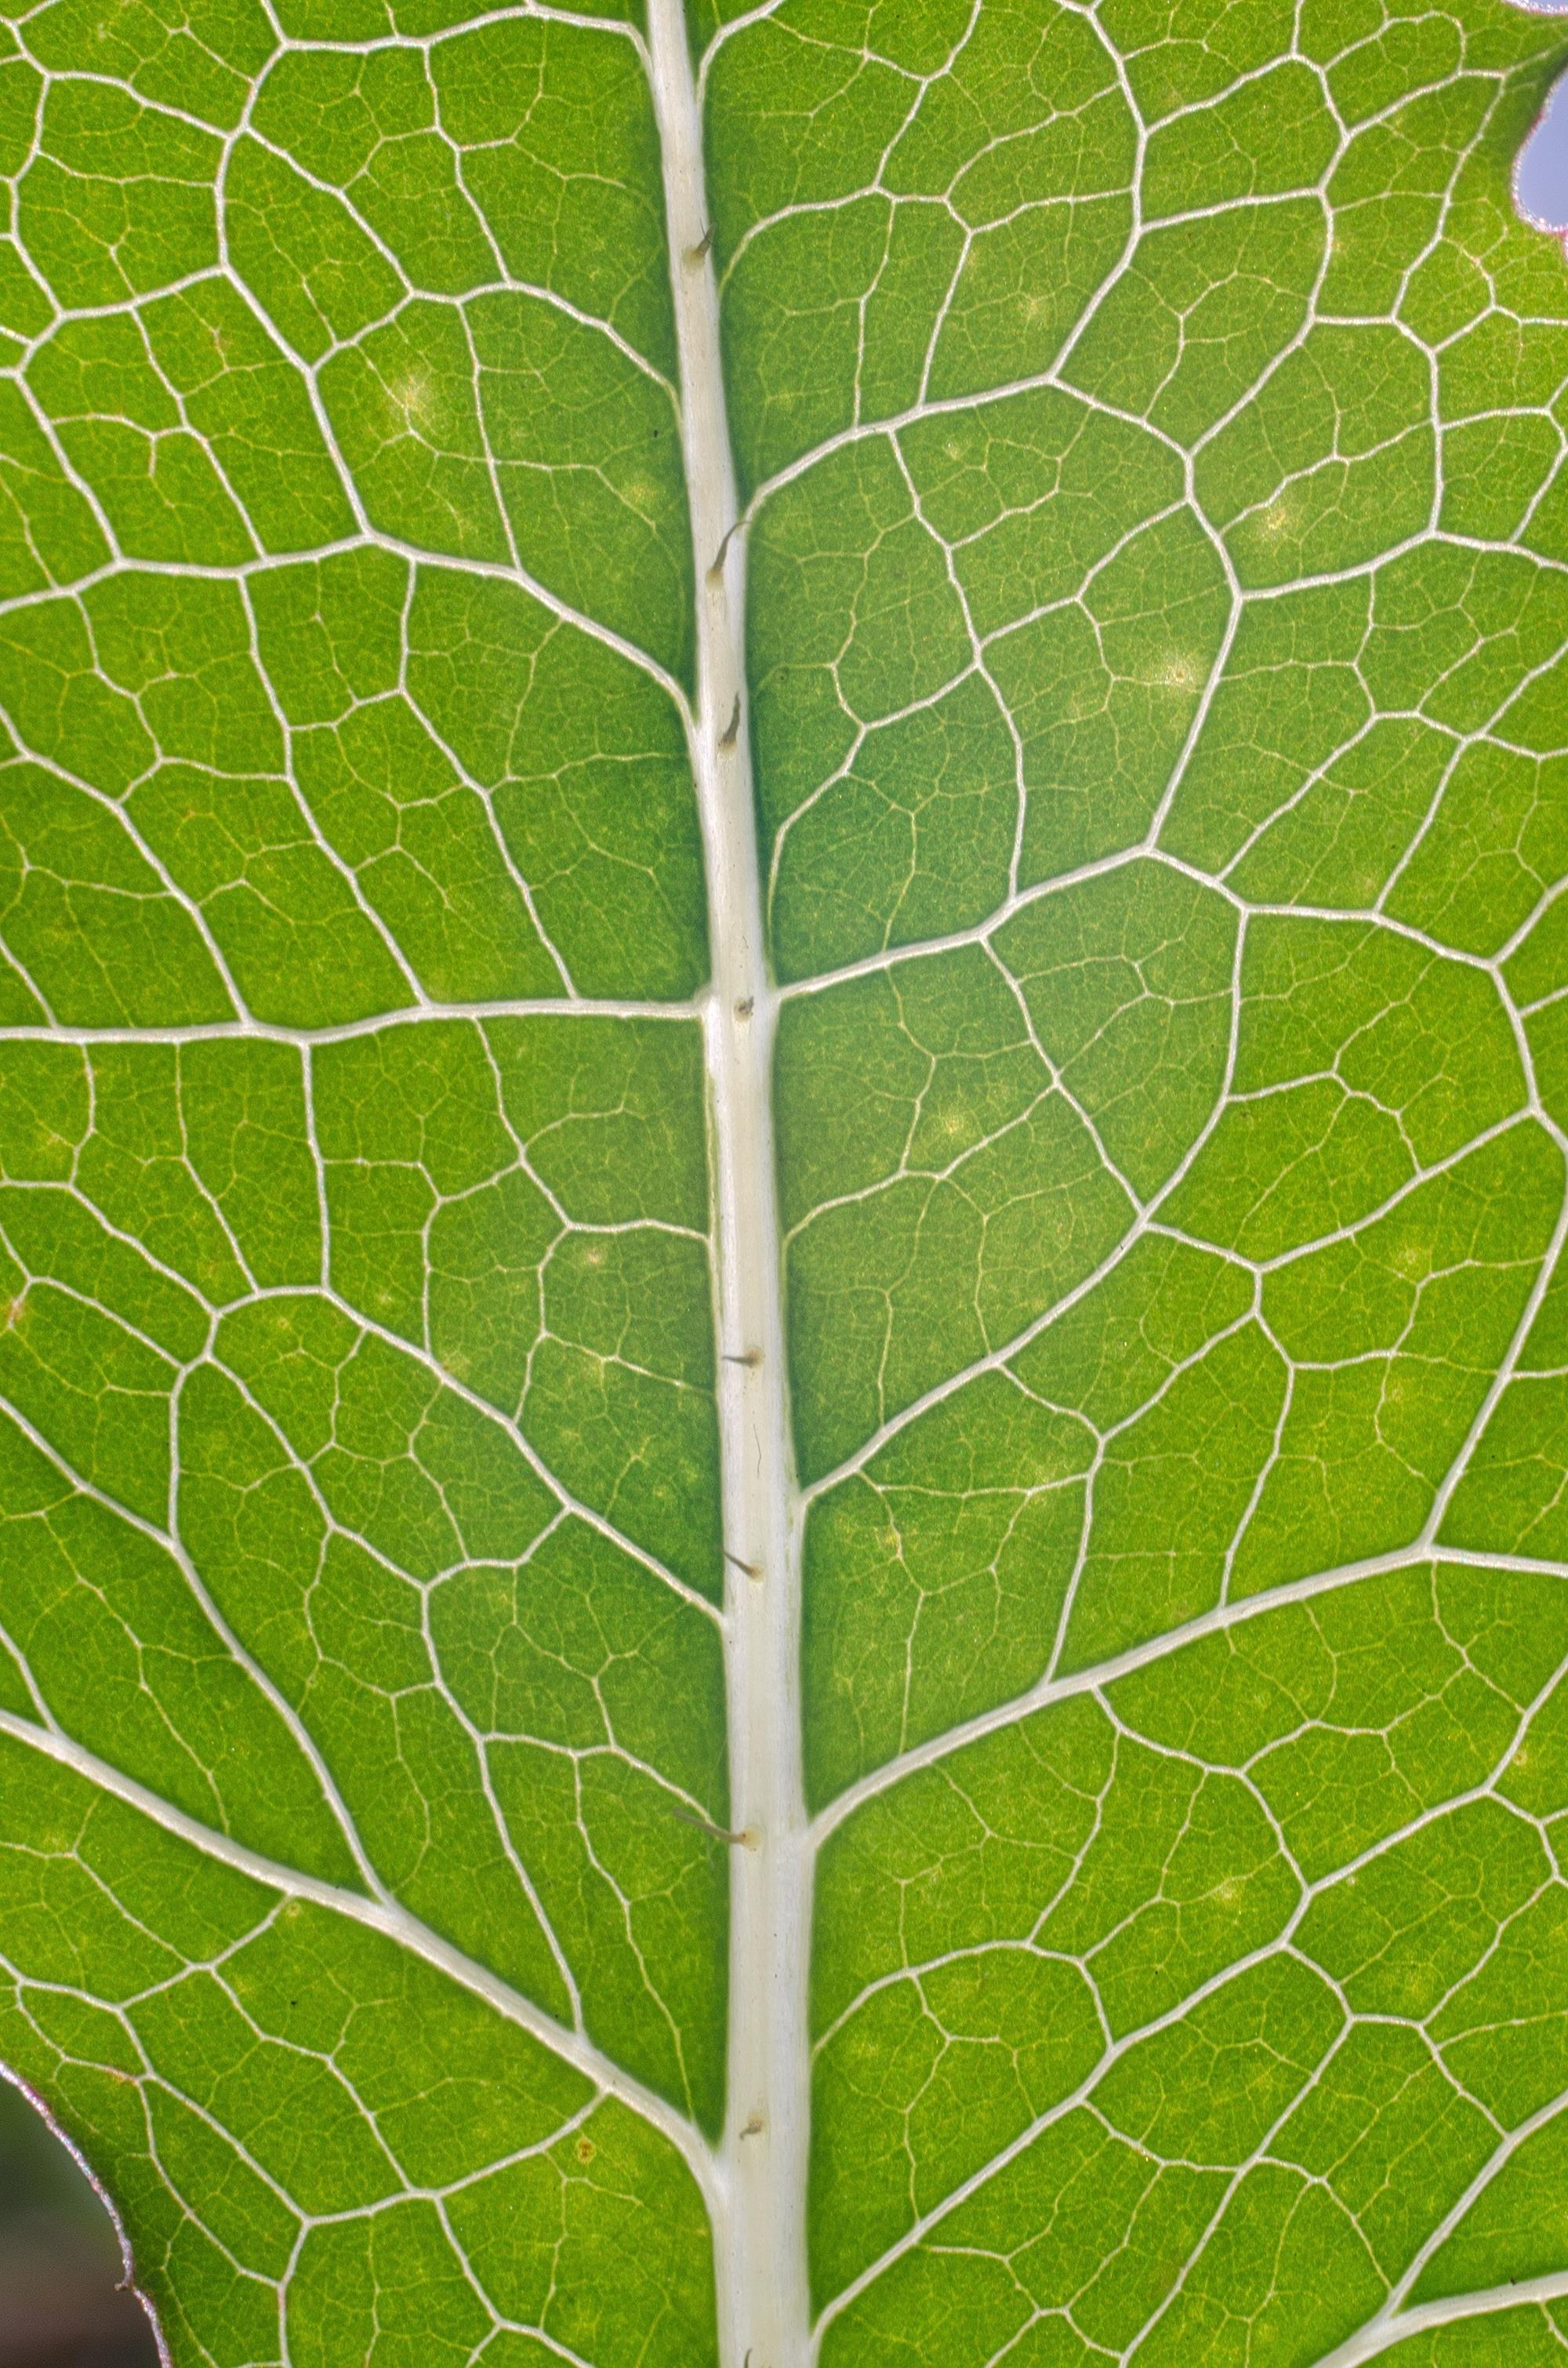 commons photo challenge 2016 july leaf veins voting wikimedia commons. Black Bedroom Furniture Sets. Home Design Ideas